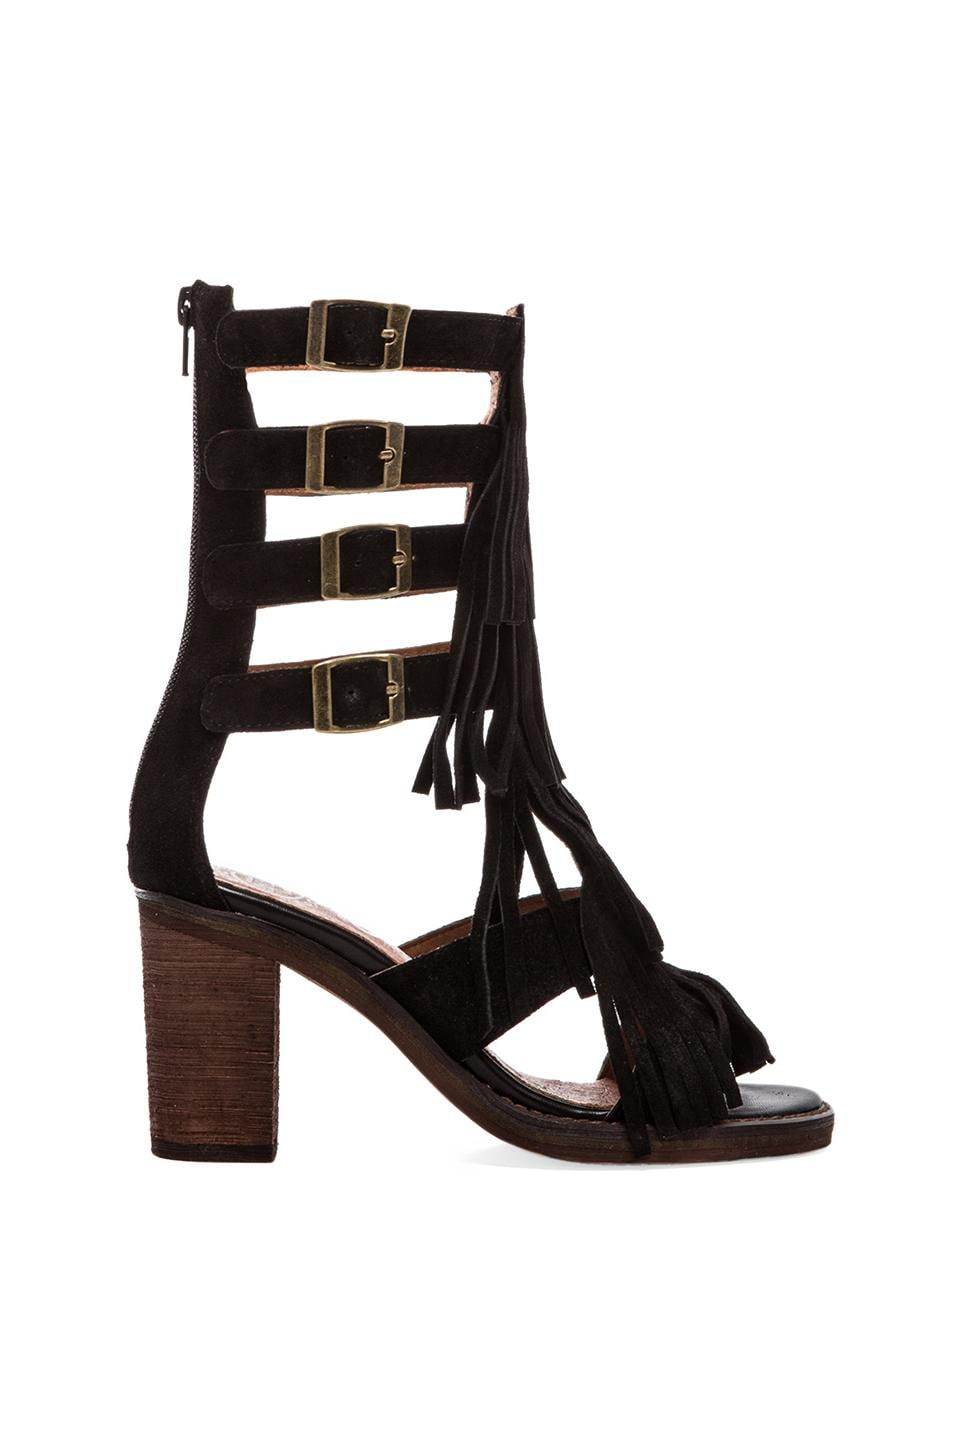 Jeffrey Campbell Omaha Strappy Sandal in Black